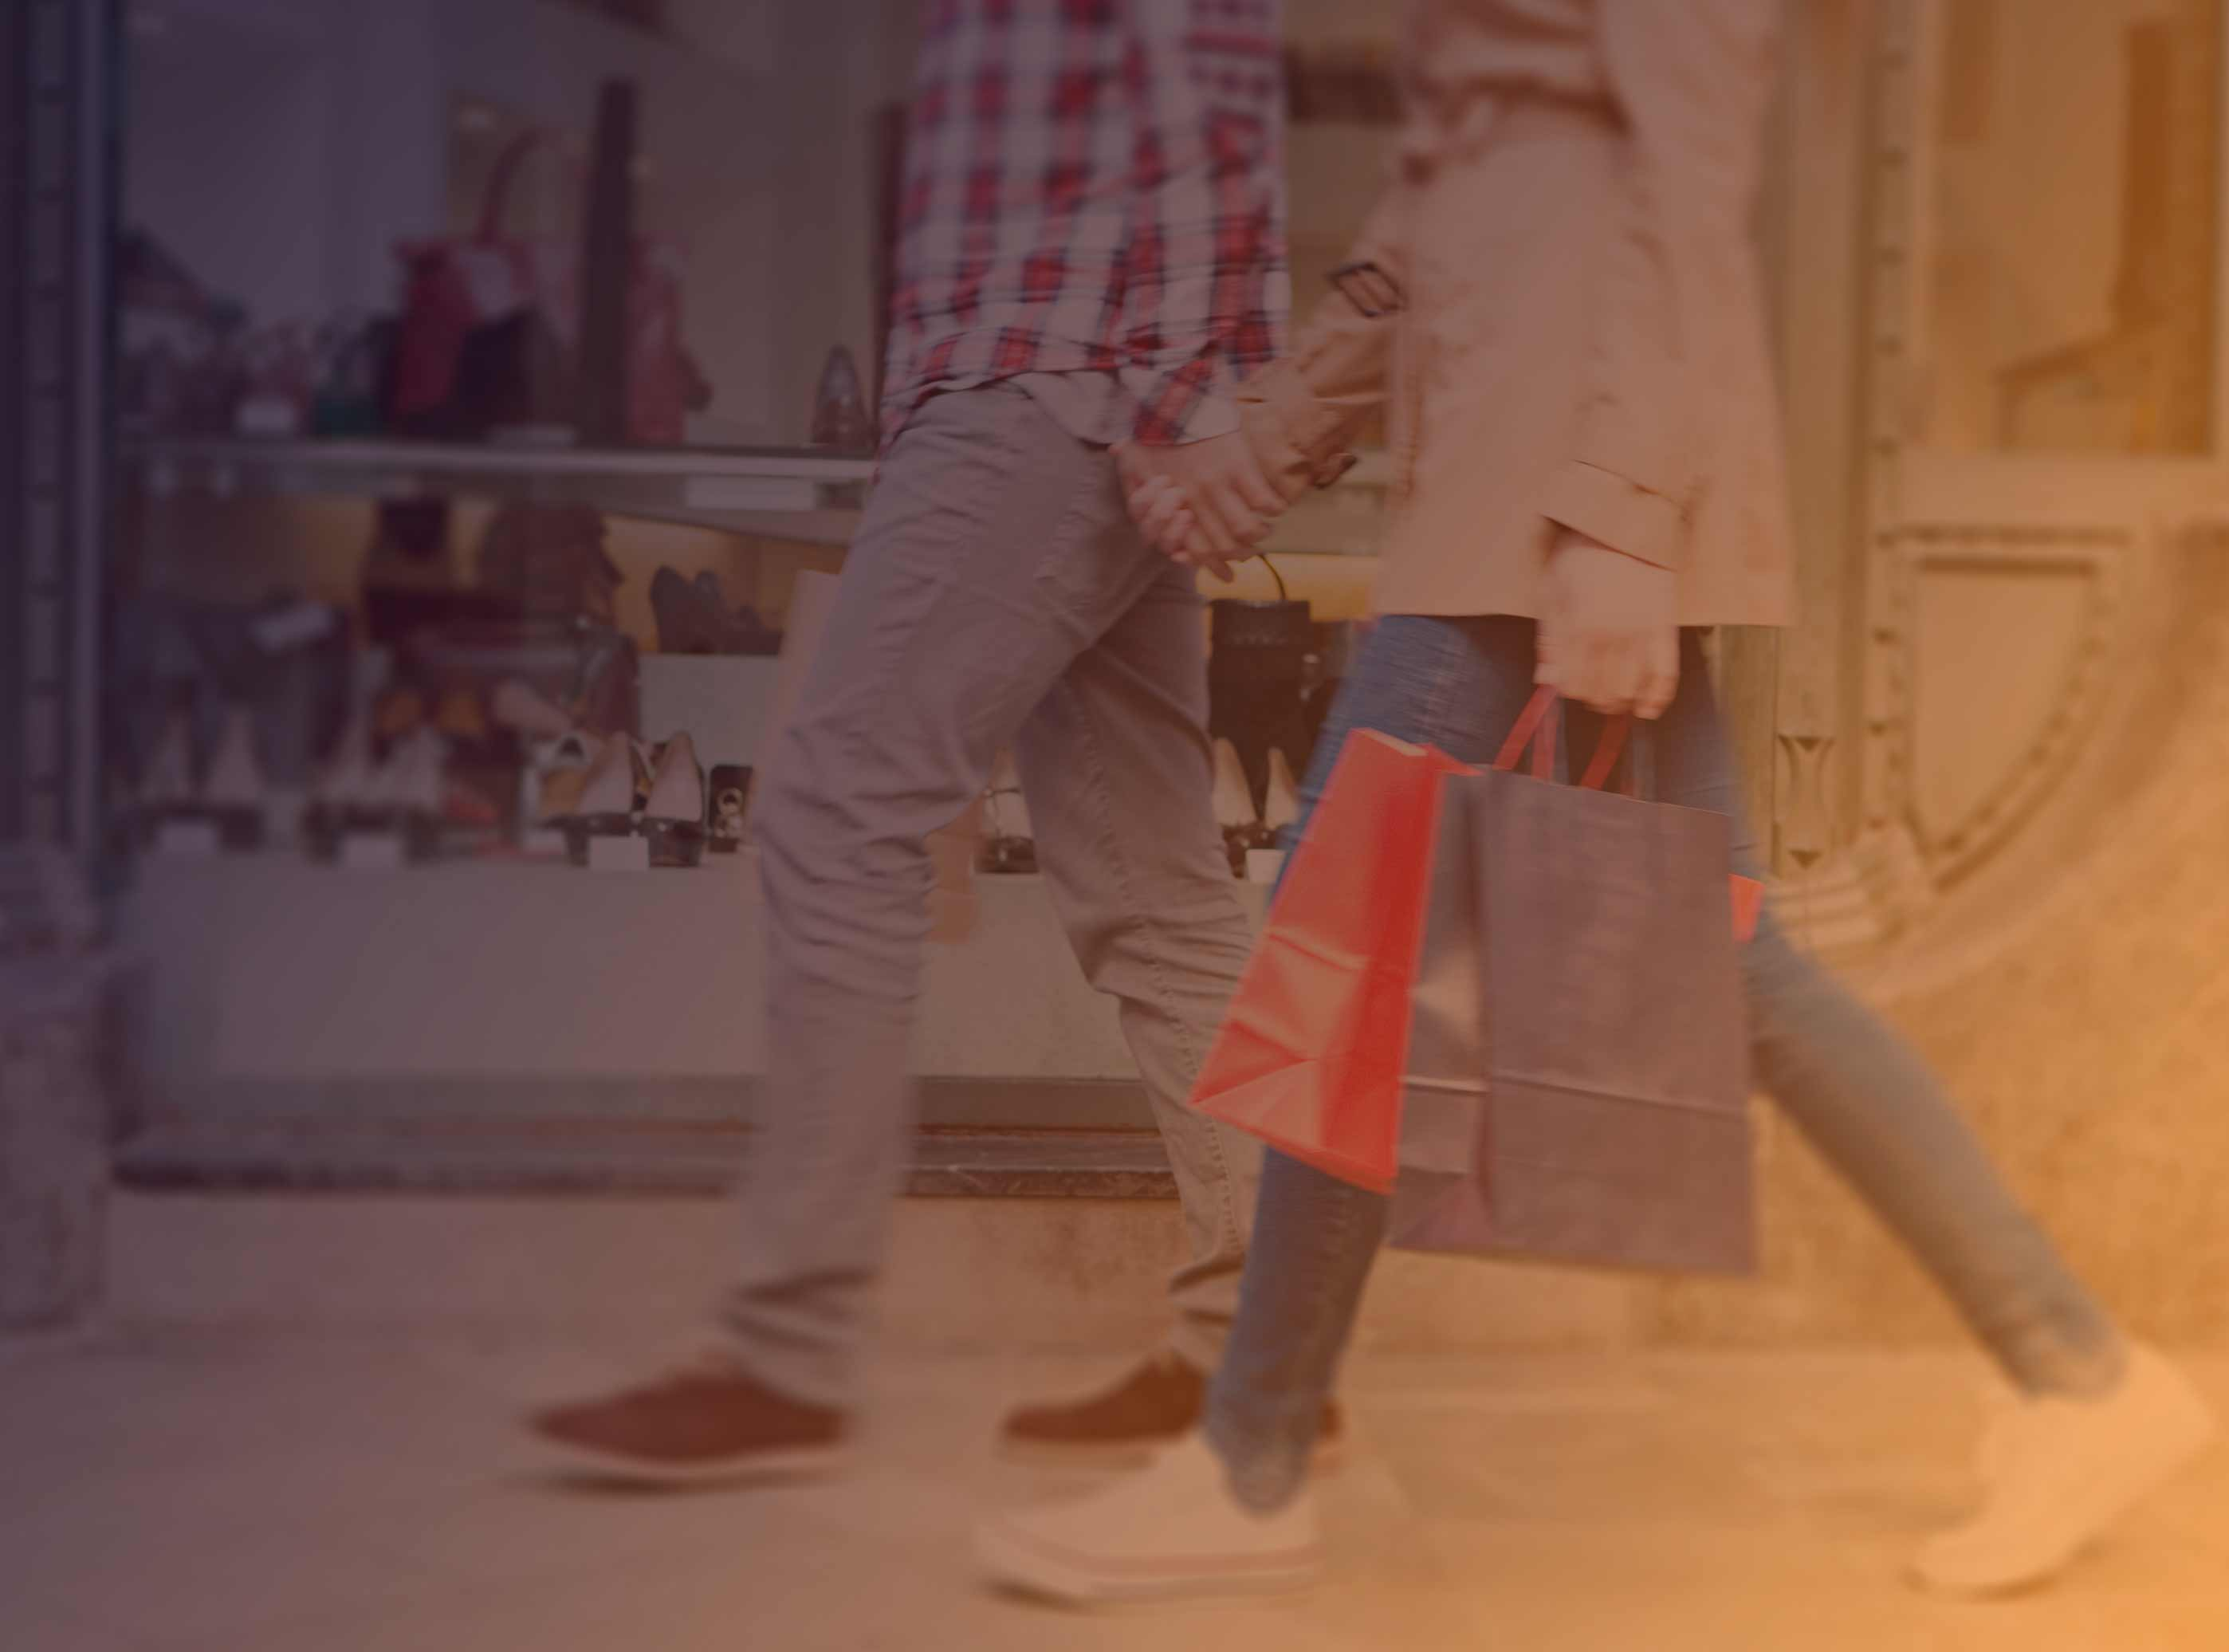 Bata Marries CRM Insights With Facebook Campaigns